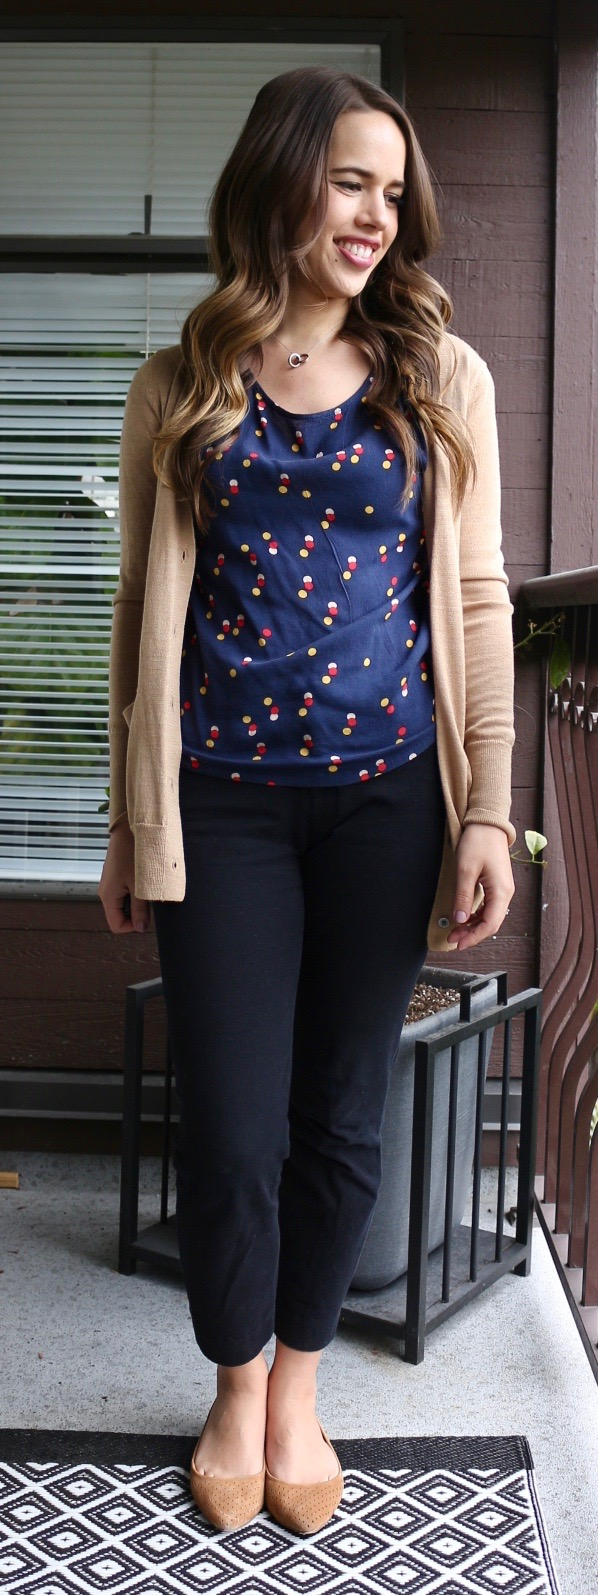 Jules in Flats - Polka Dot Top with Camel Cardigan and Flats (Spring Work Outfit)